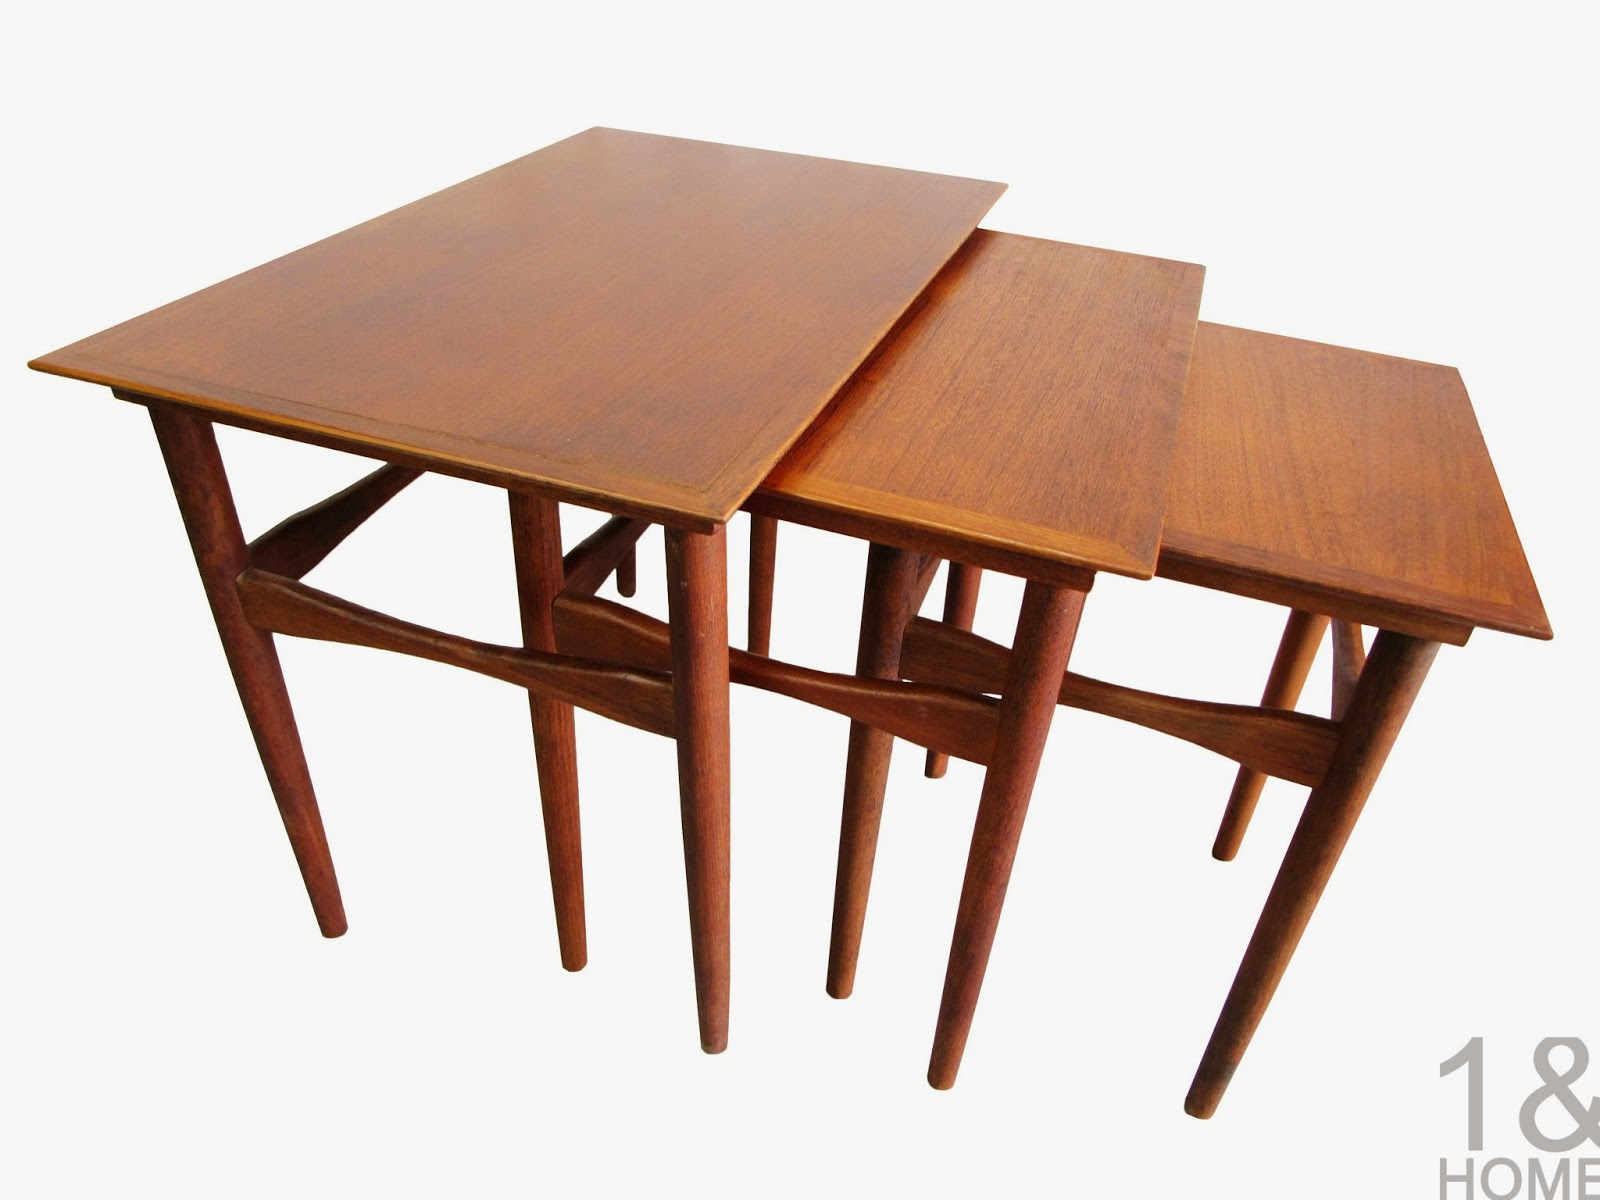 ... Mid Century Nesting Tables Choice Image Table Decoration Ideas Mid  Century Nesting Tables Choice Image Table ...